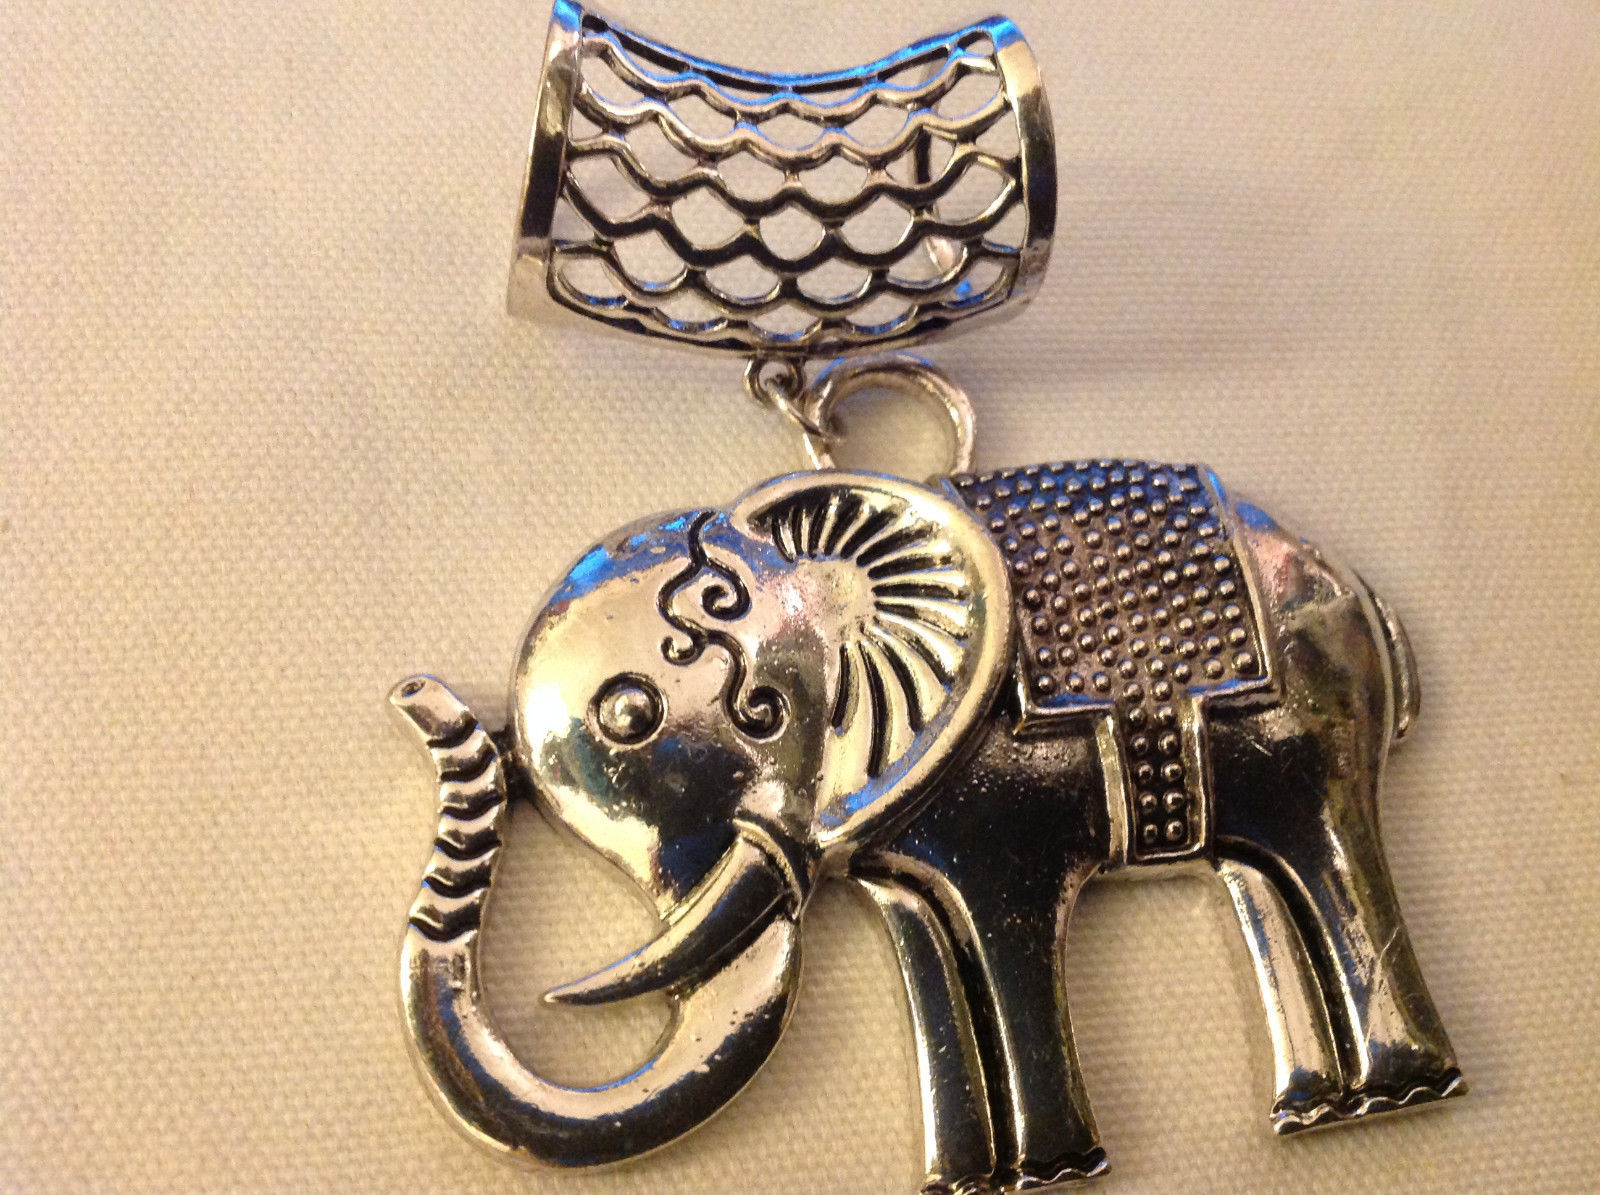 Large Elephant Shaped Silver Tone Scarf Pendant Total Length 4 Inches